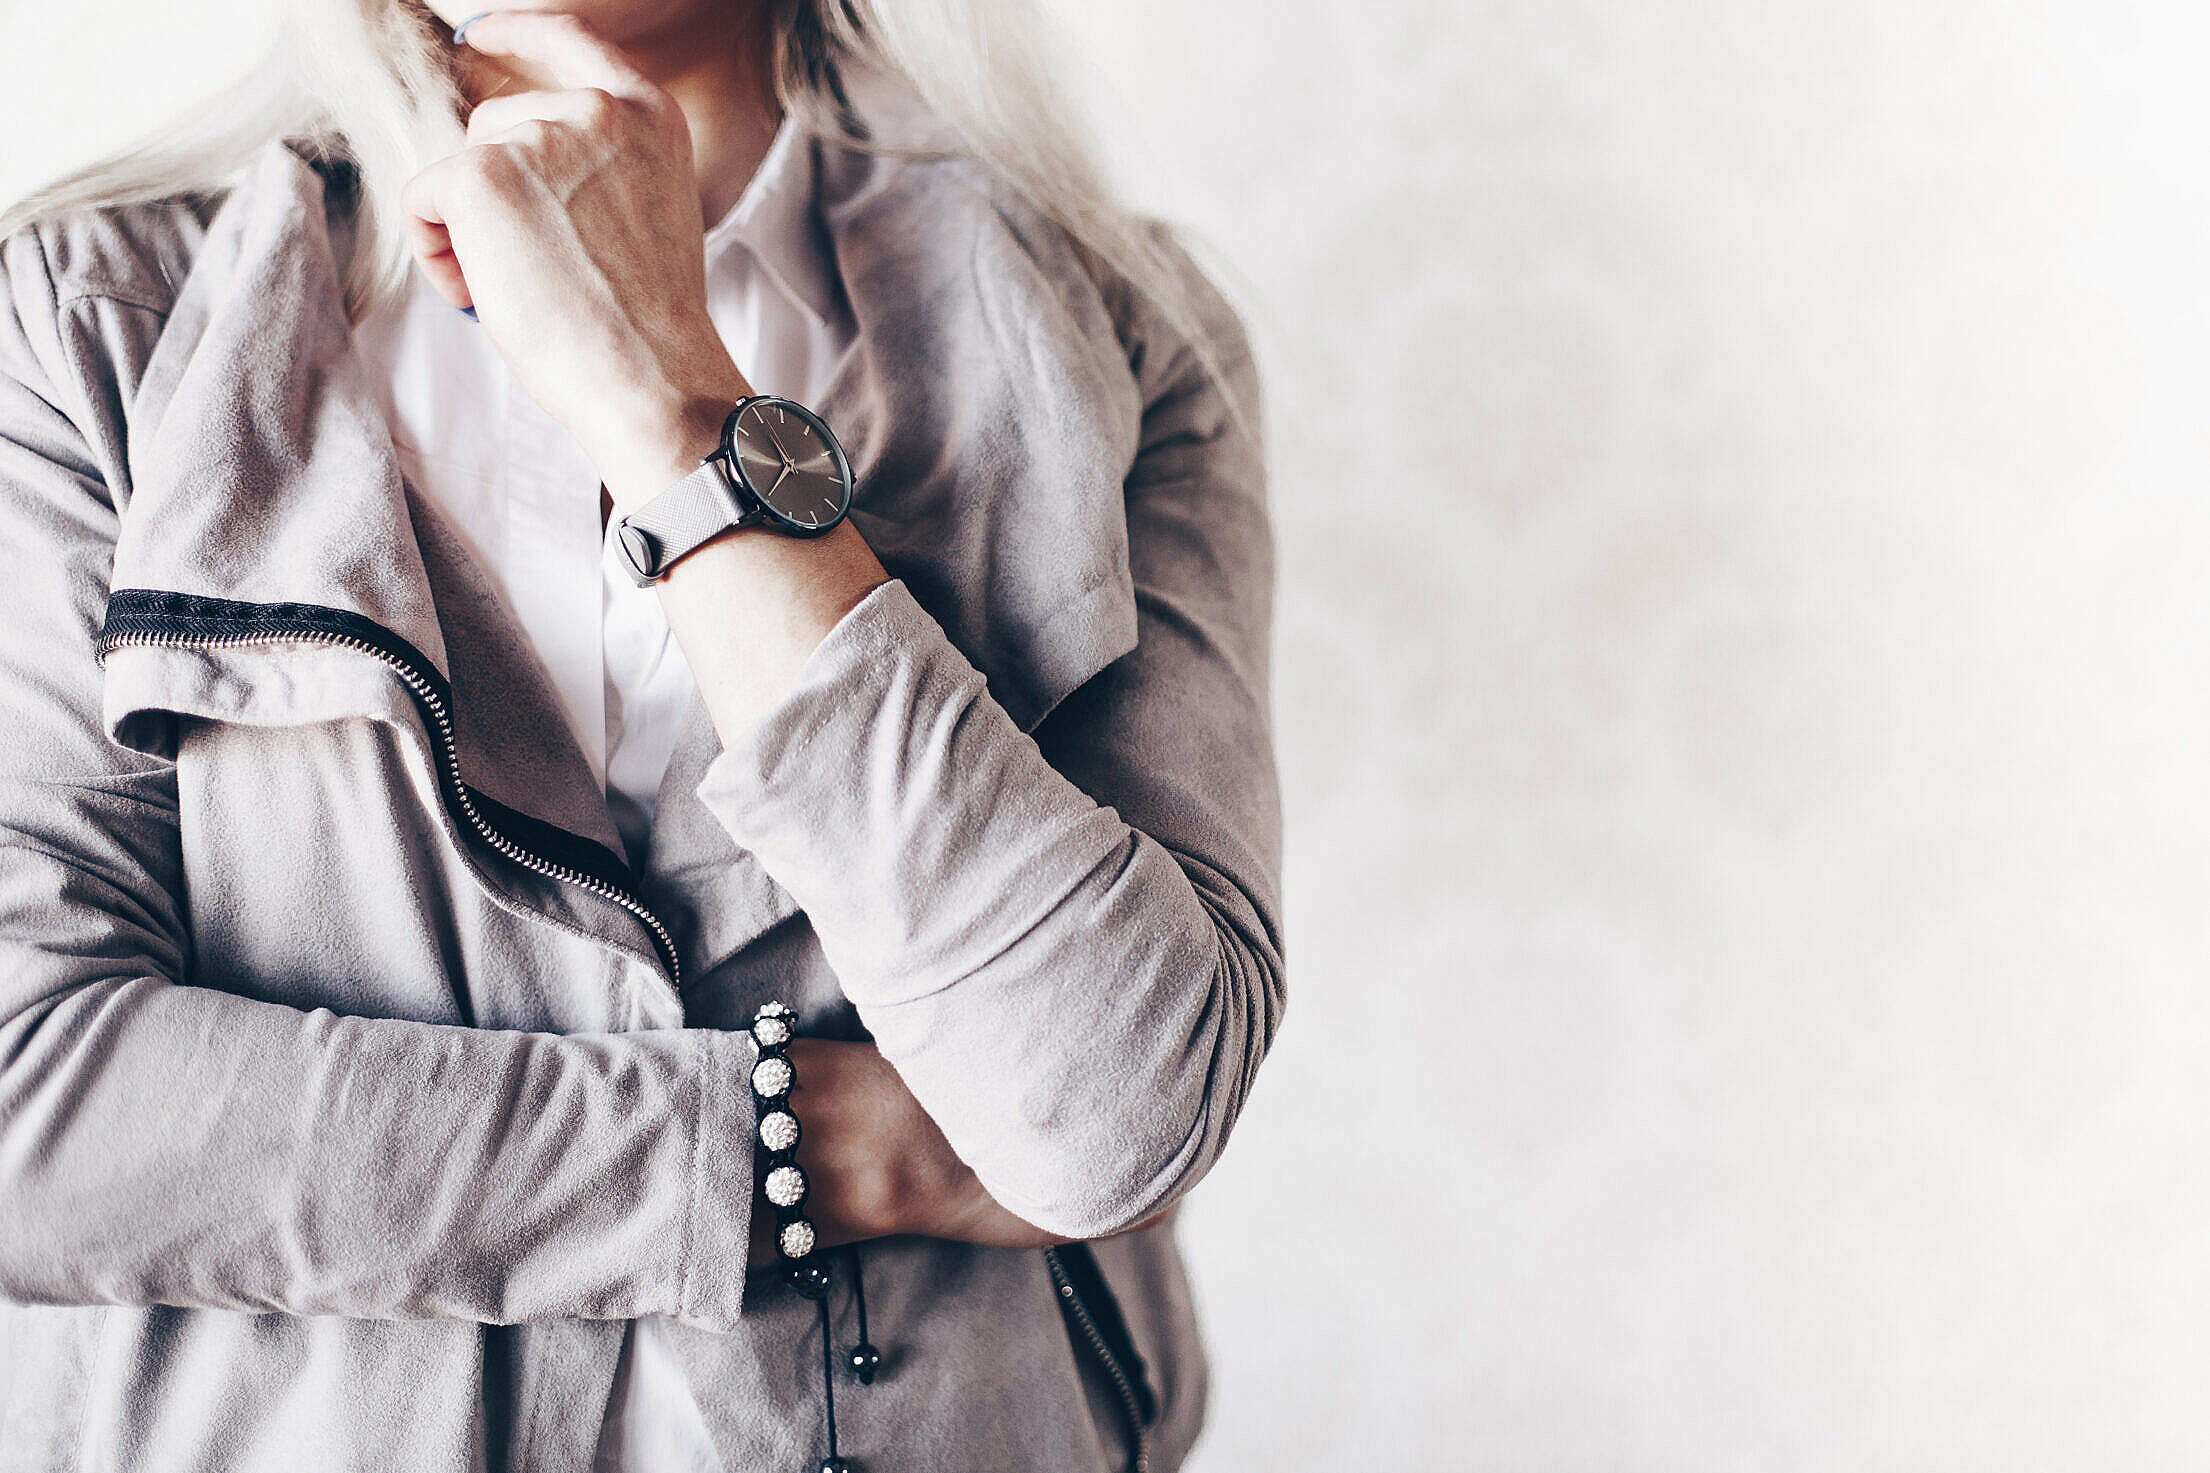 Girl Fashion Pose with Gray Watches and Suede Jacket Free Stock Photo